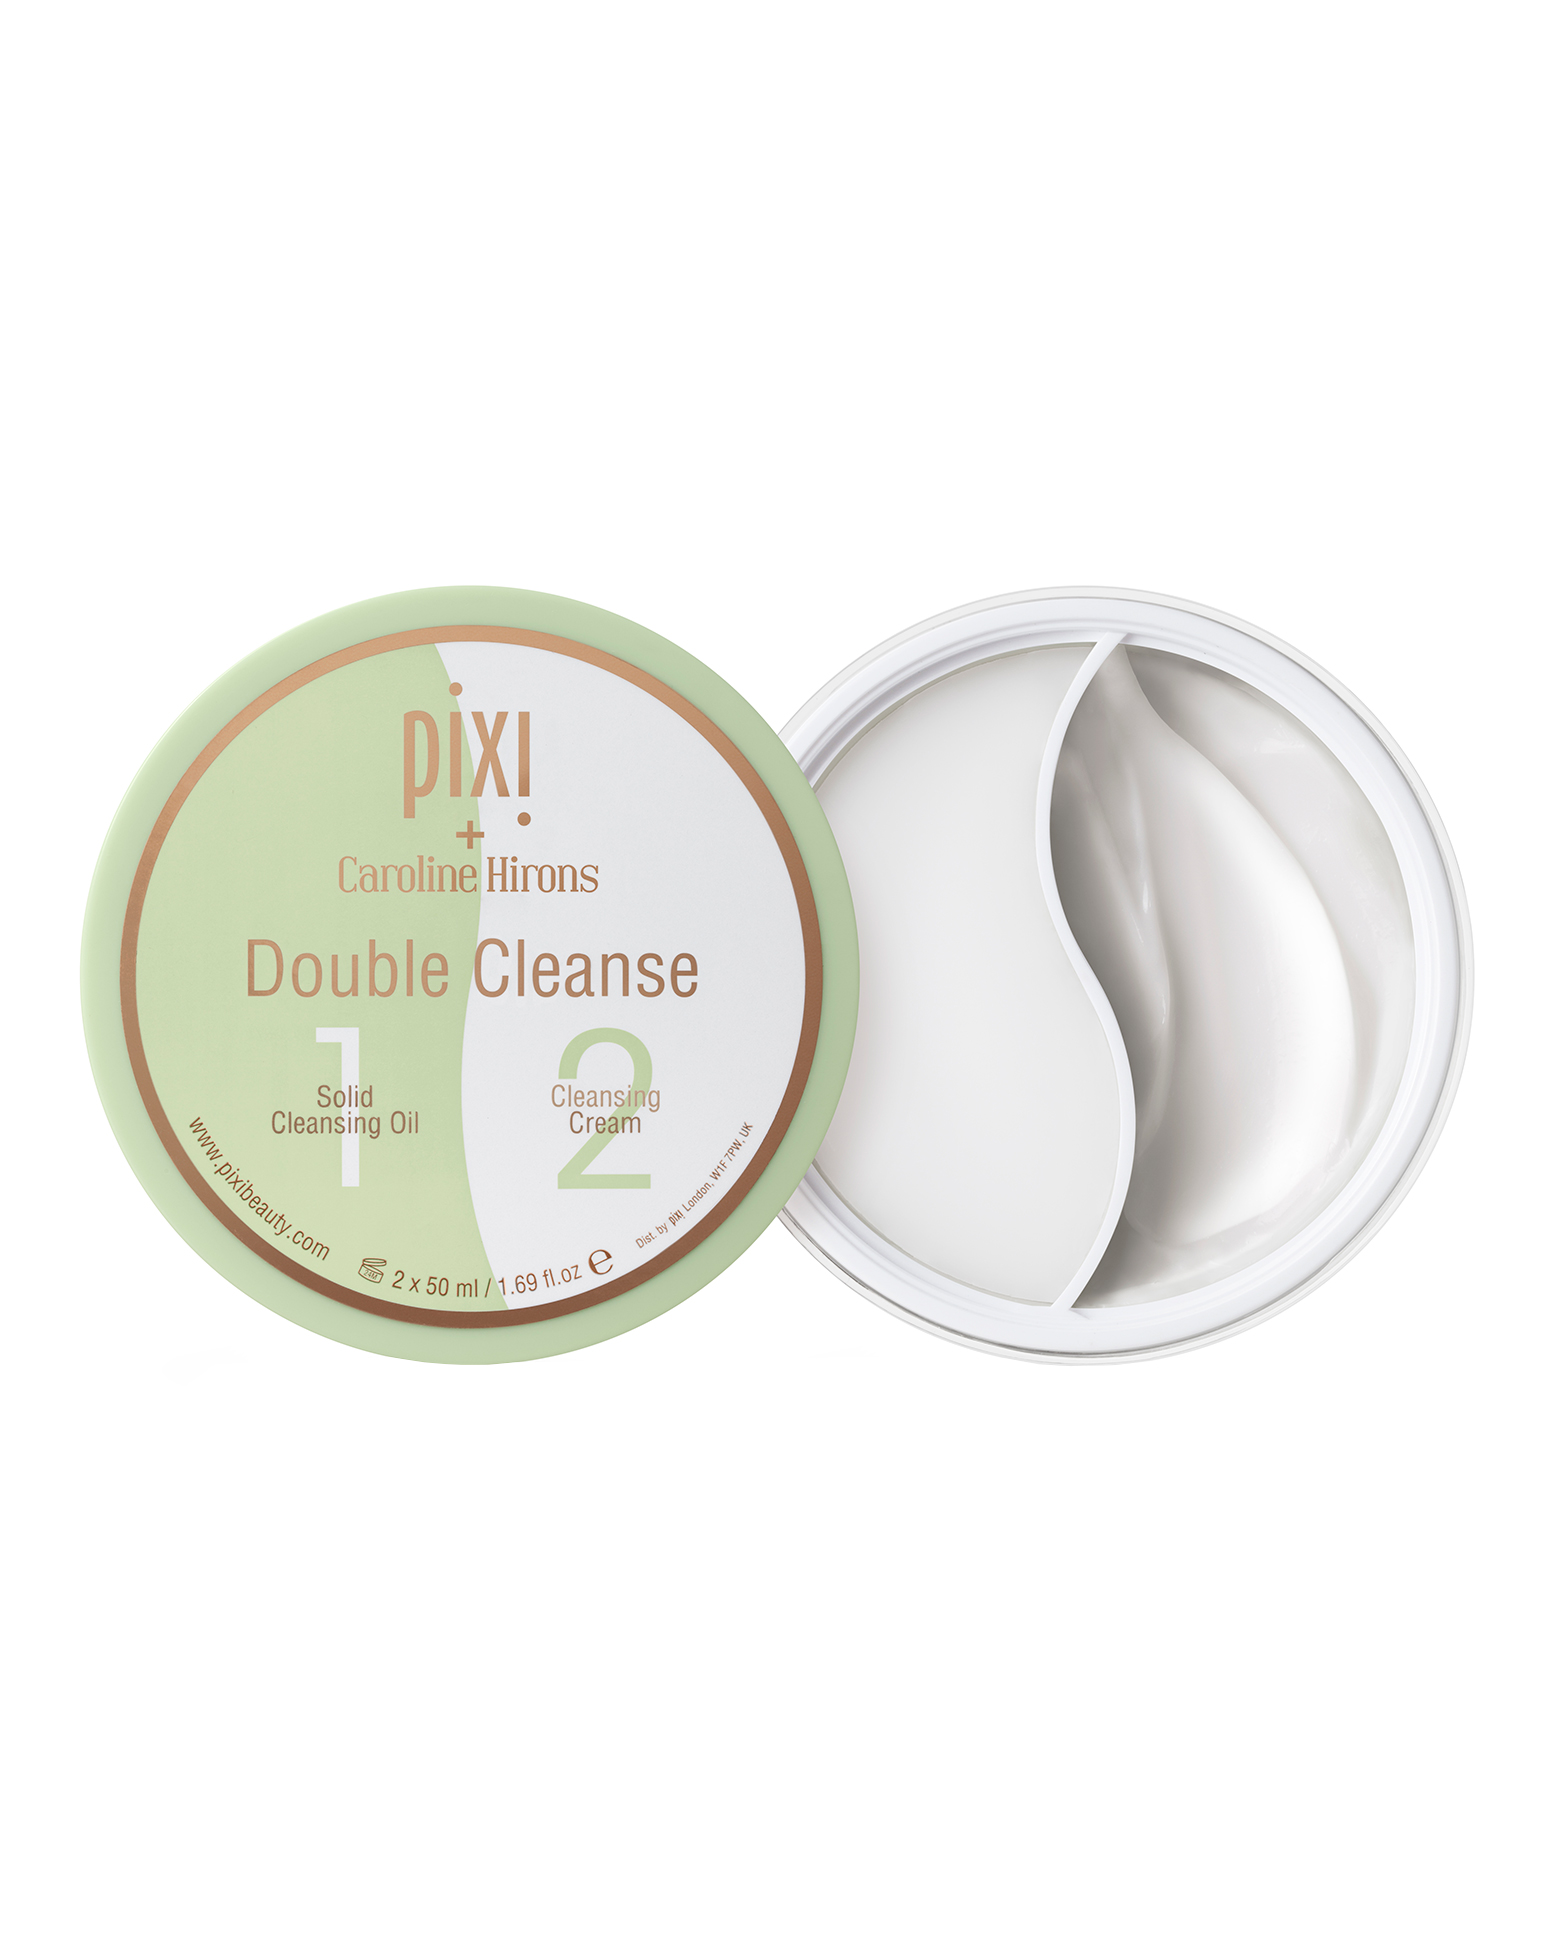 Discussion on this topic: The New Double Cleansing' Trend Says You , the-new-double-cleansing-trend-says-you/